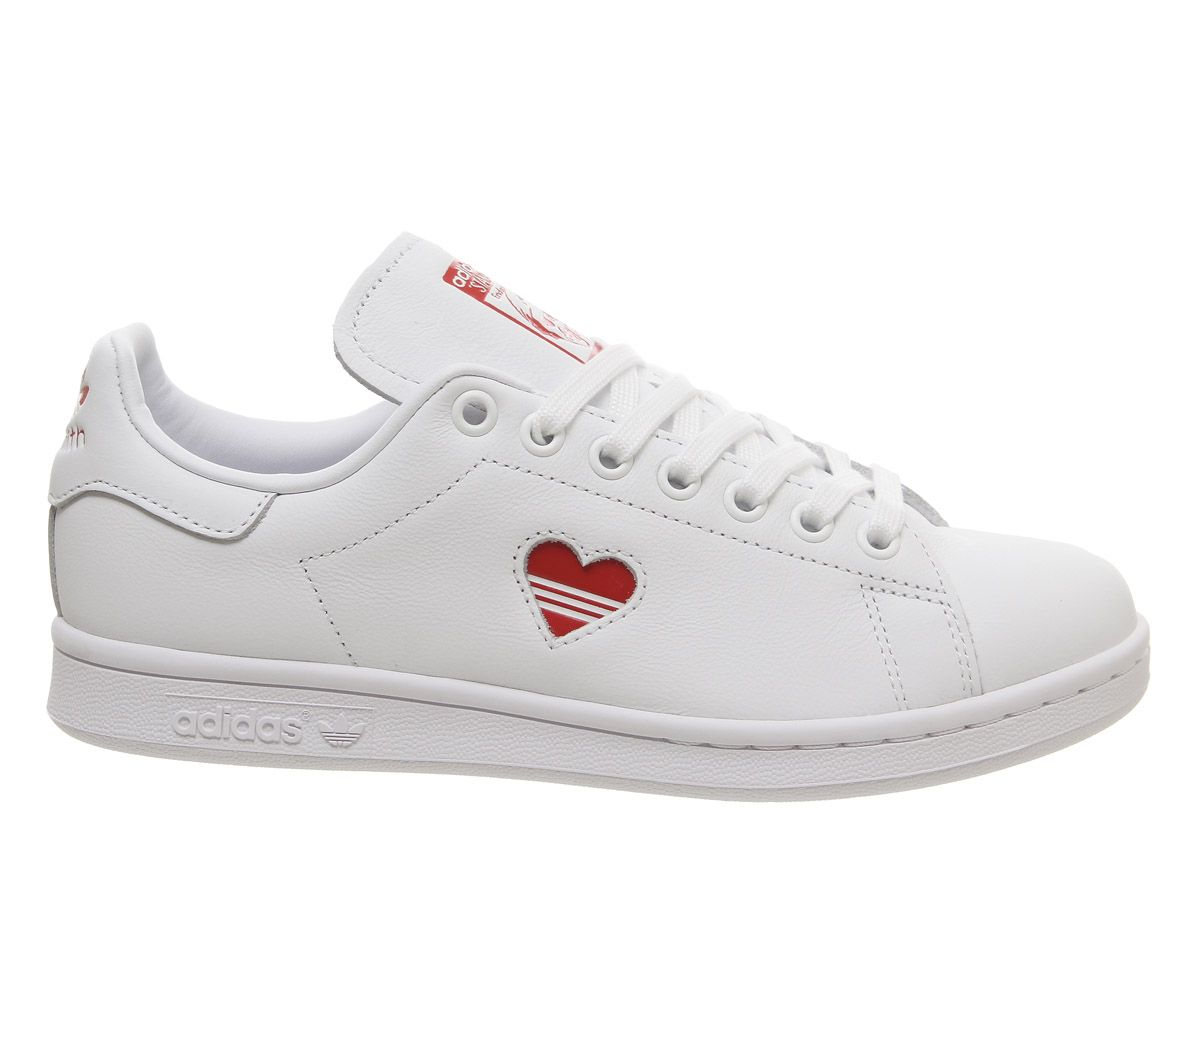 50985324a60 adidas Stan Smith Trainers White Red Heart - Hers trainers